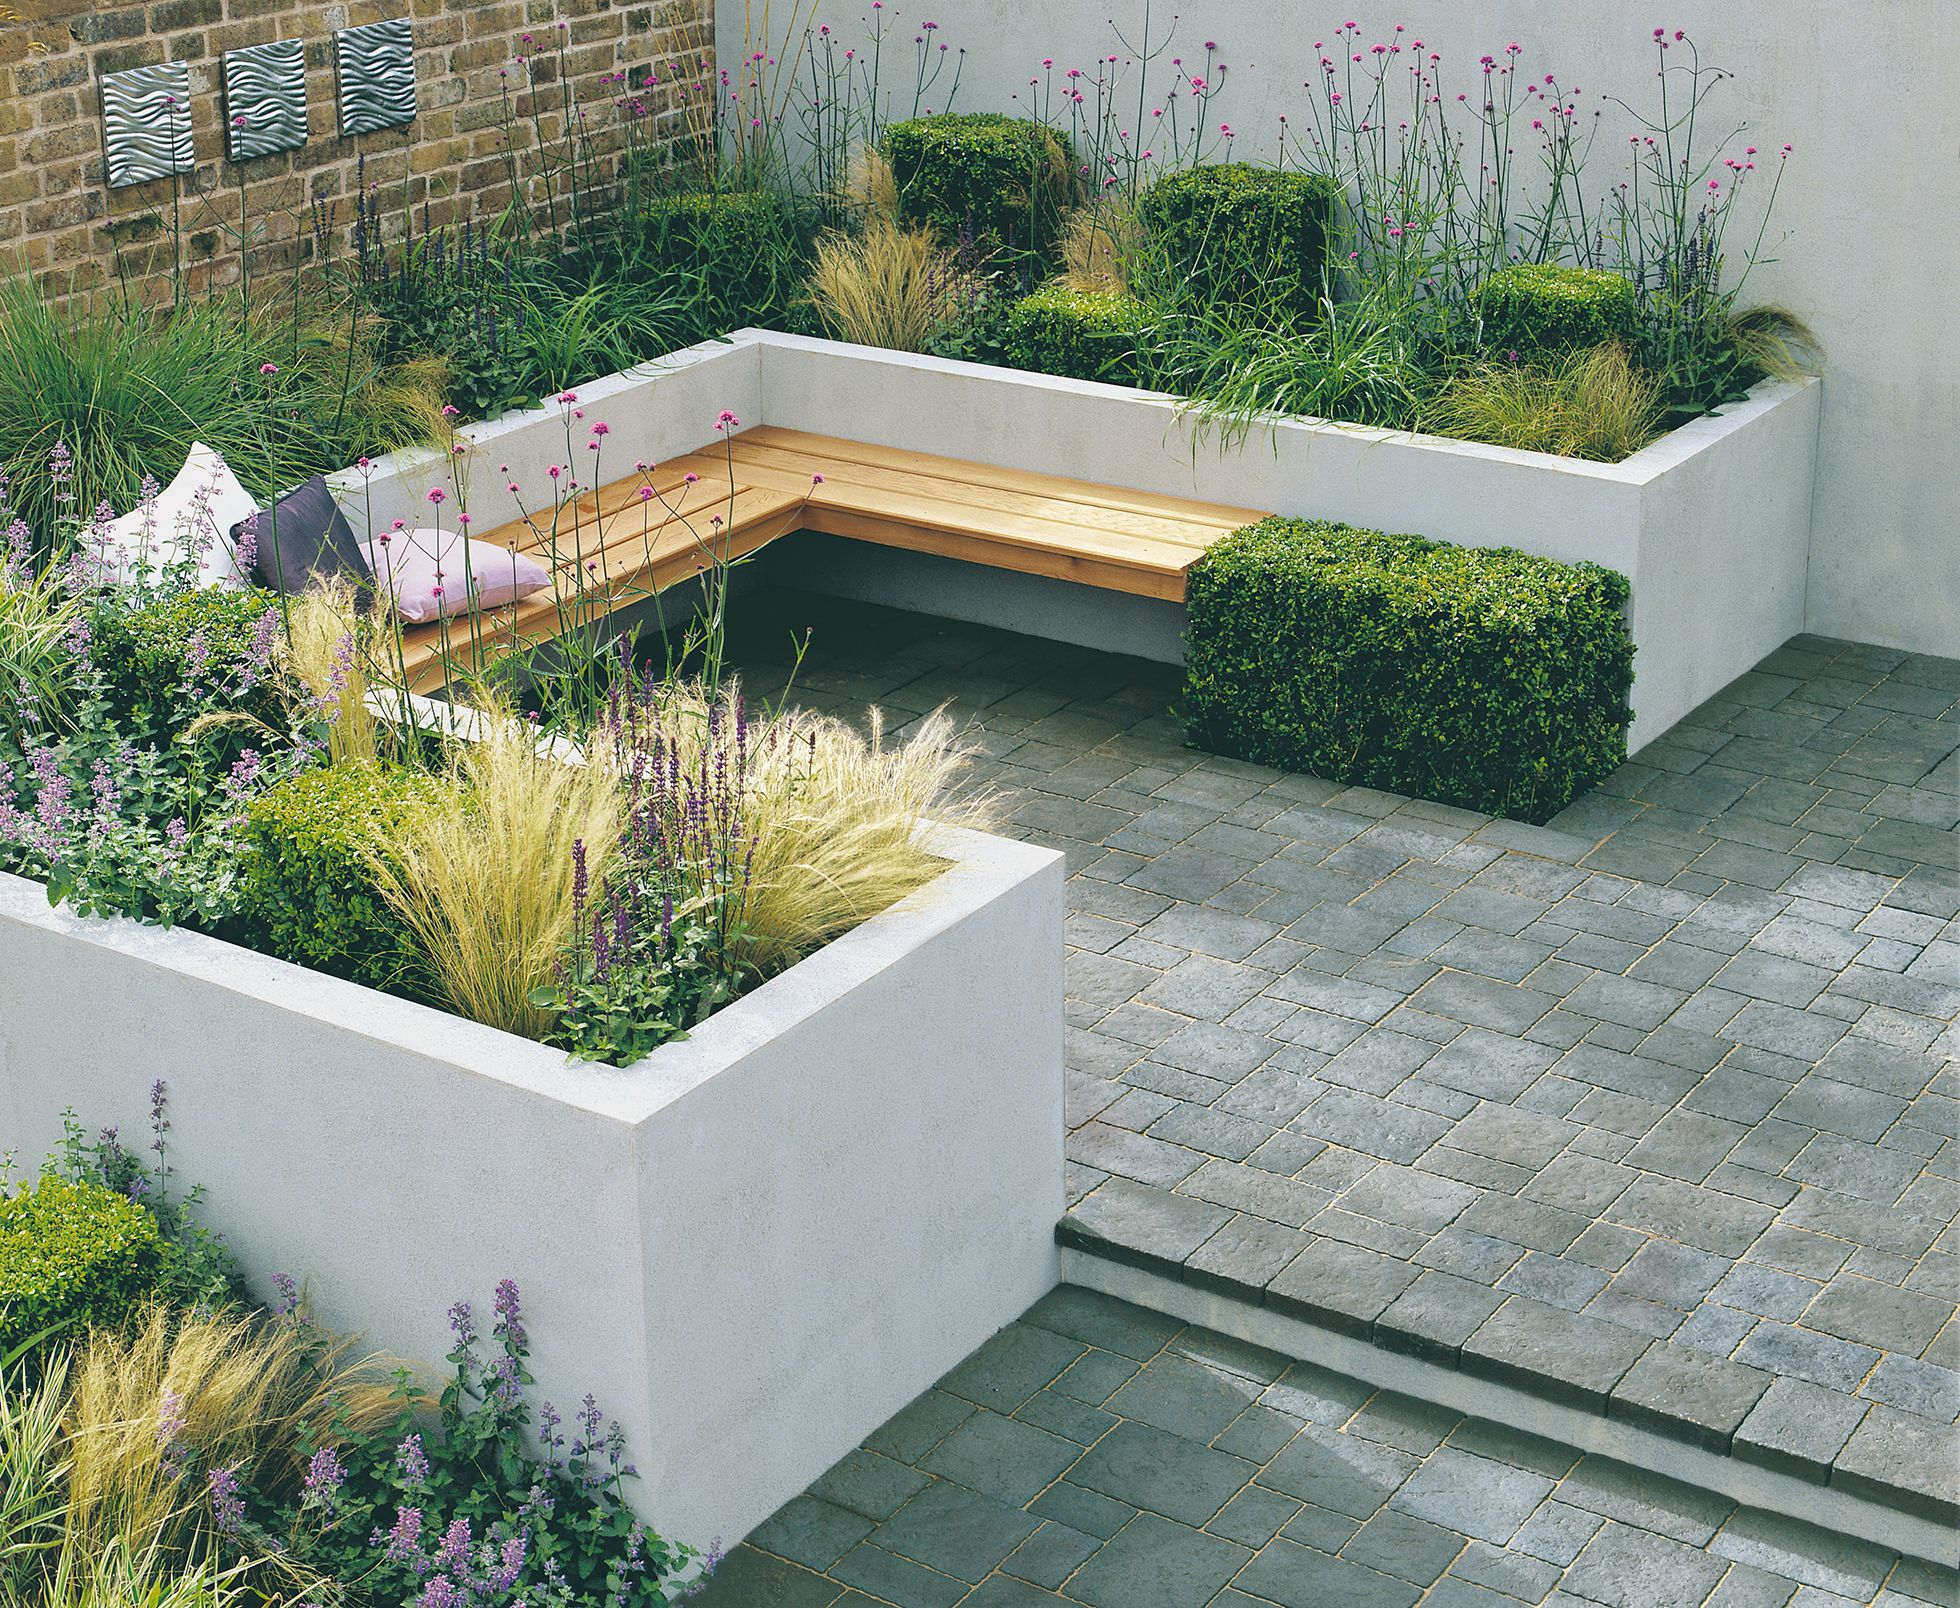 Garden seating and planters made from rendered block work